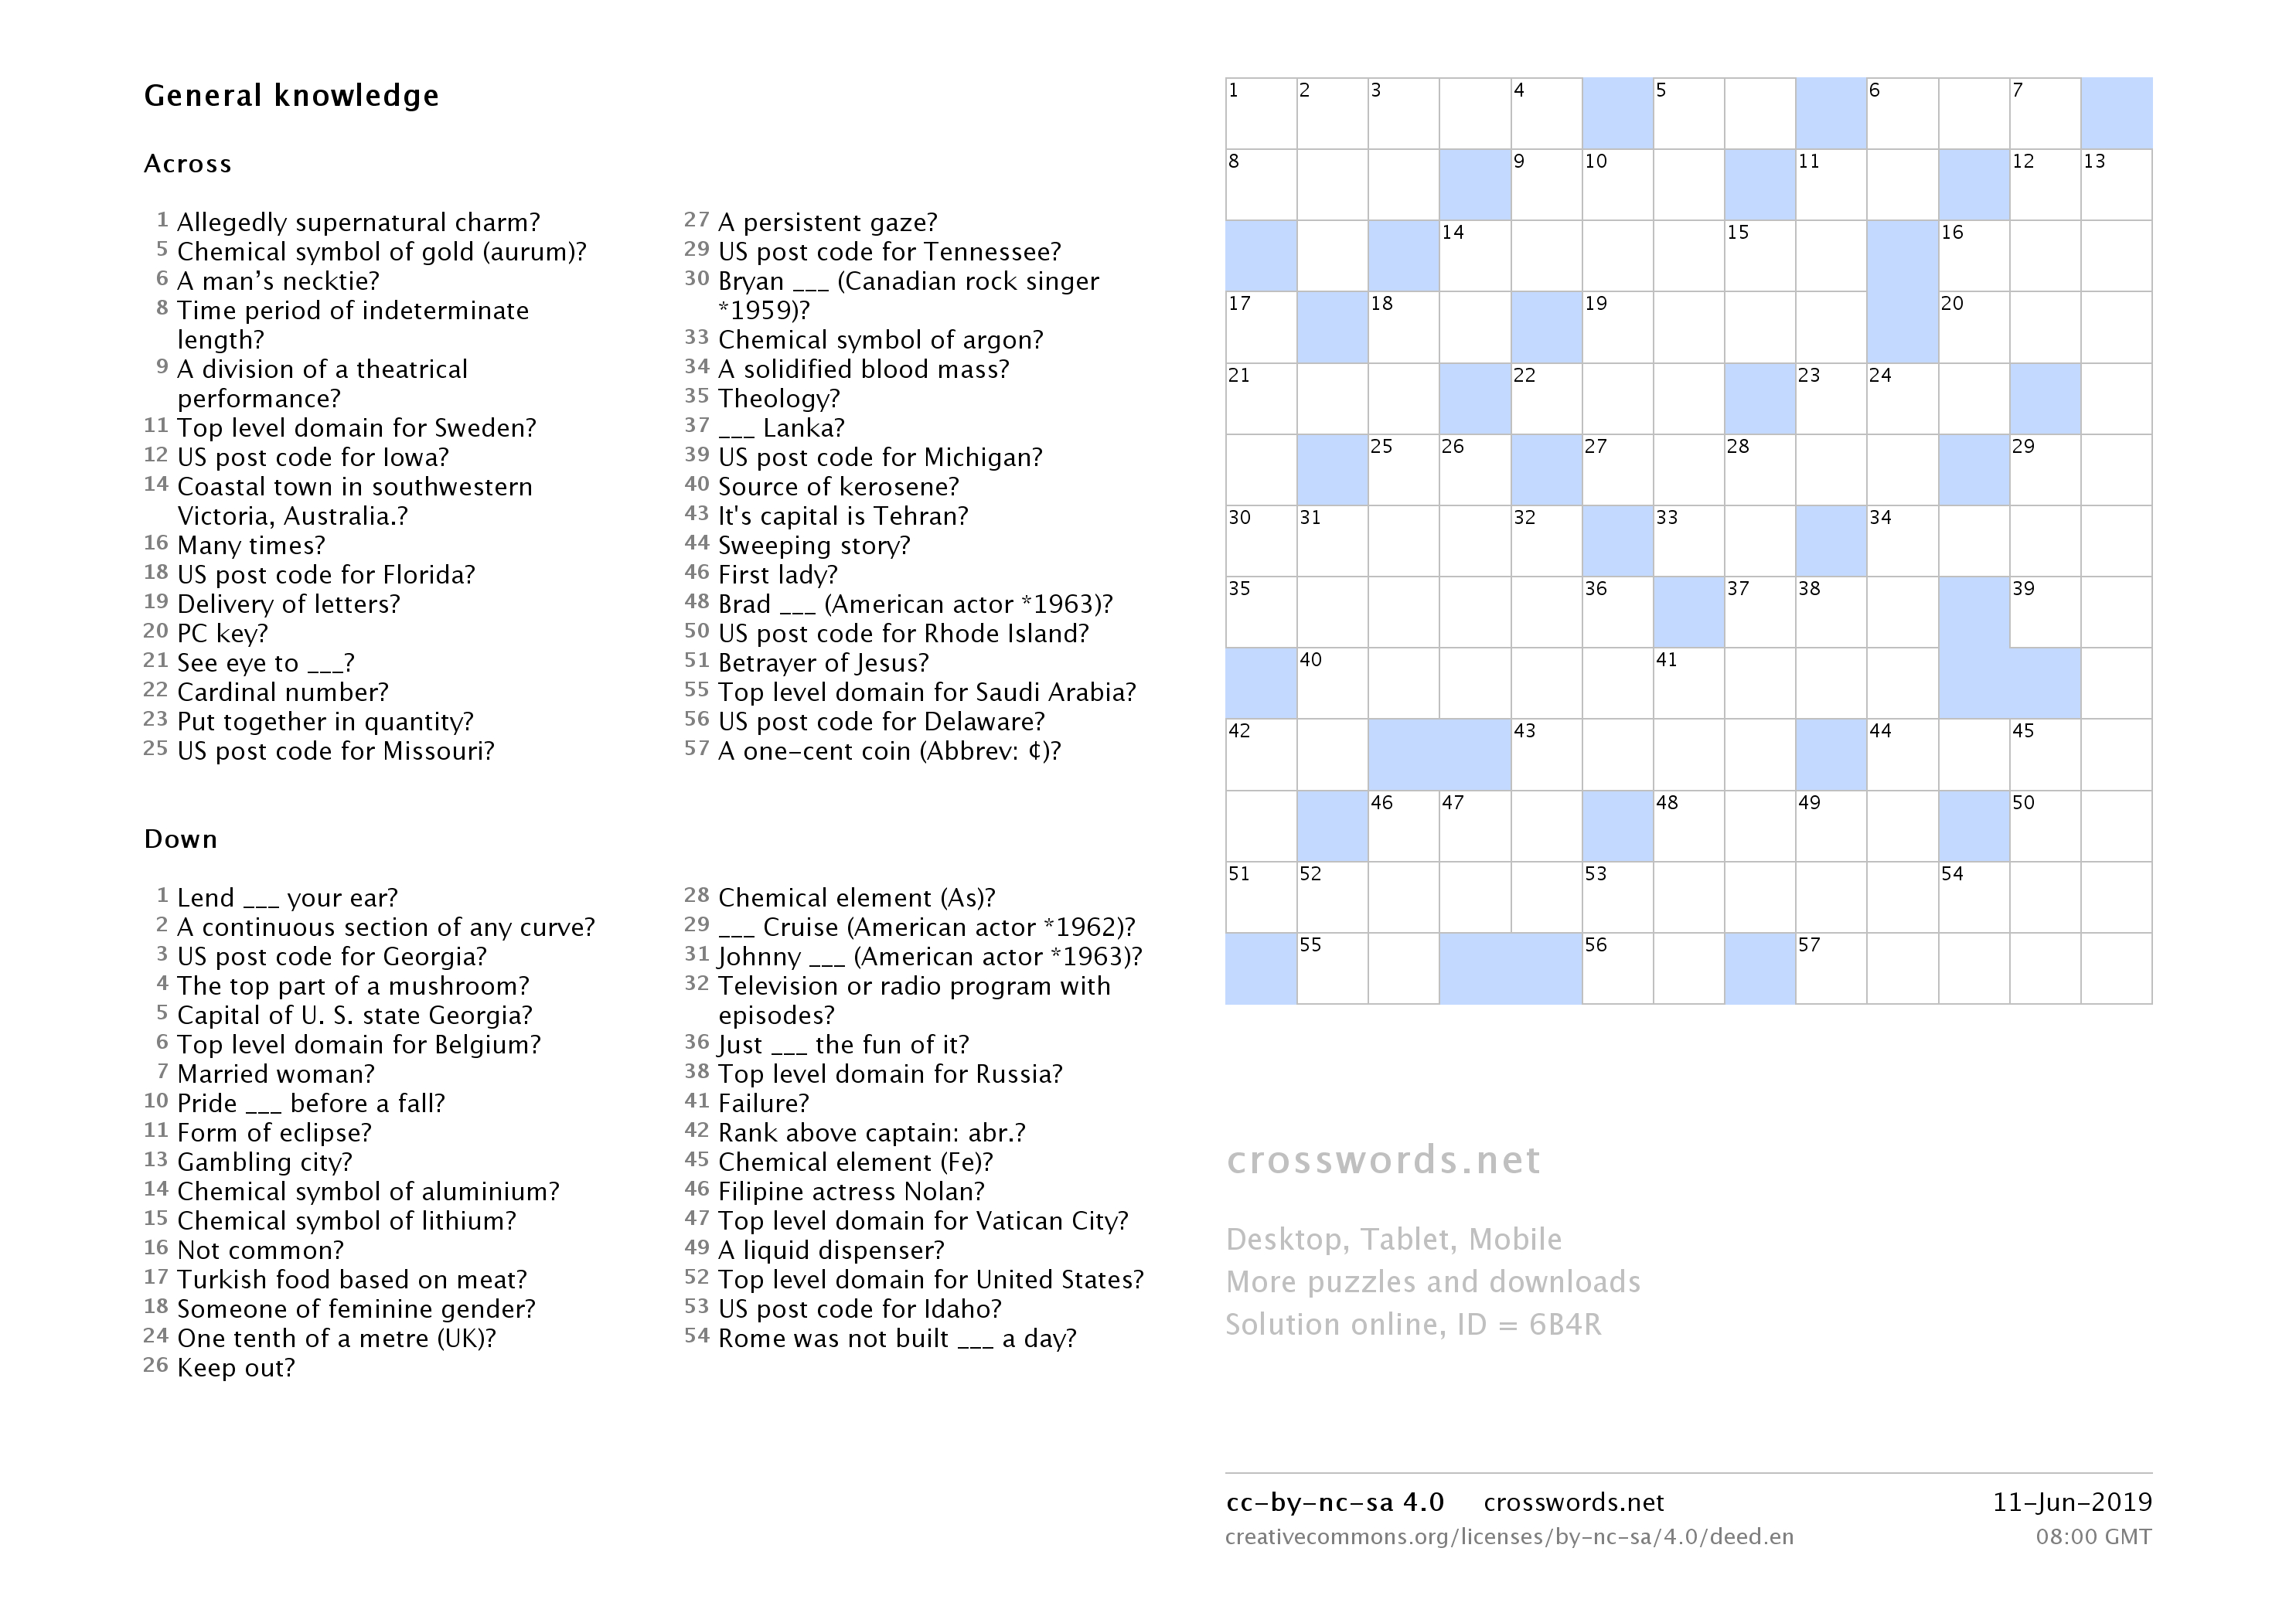 Printable Crosswords  Crosswords - Printable Crosswords.net